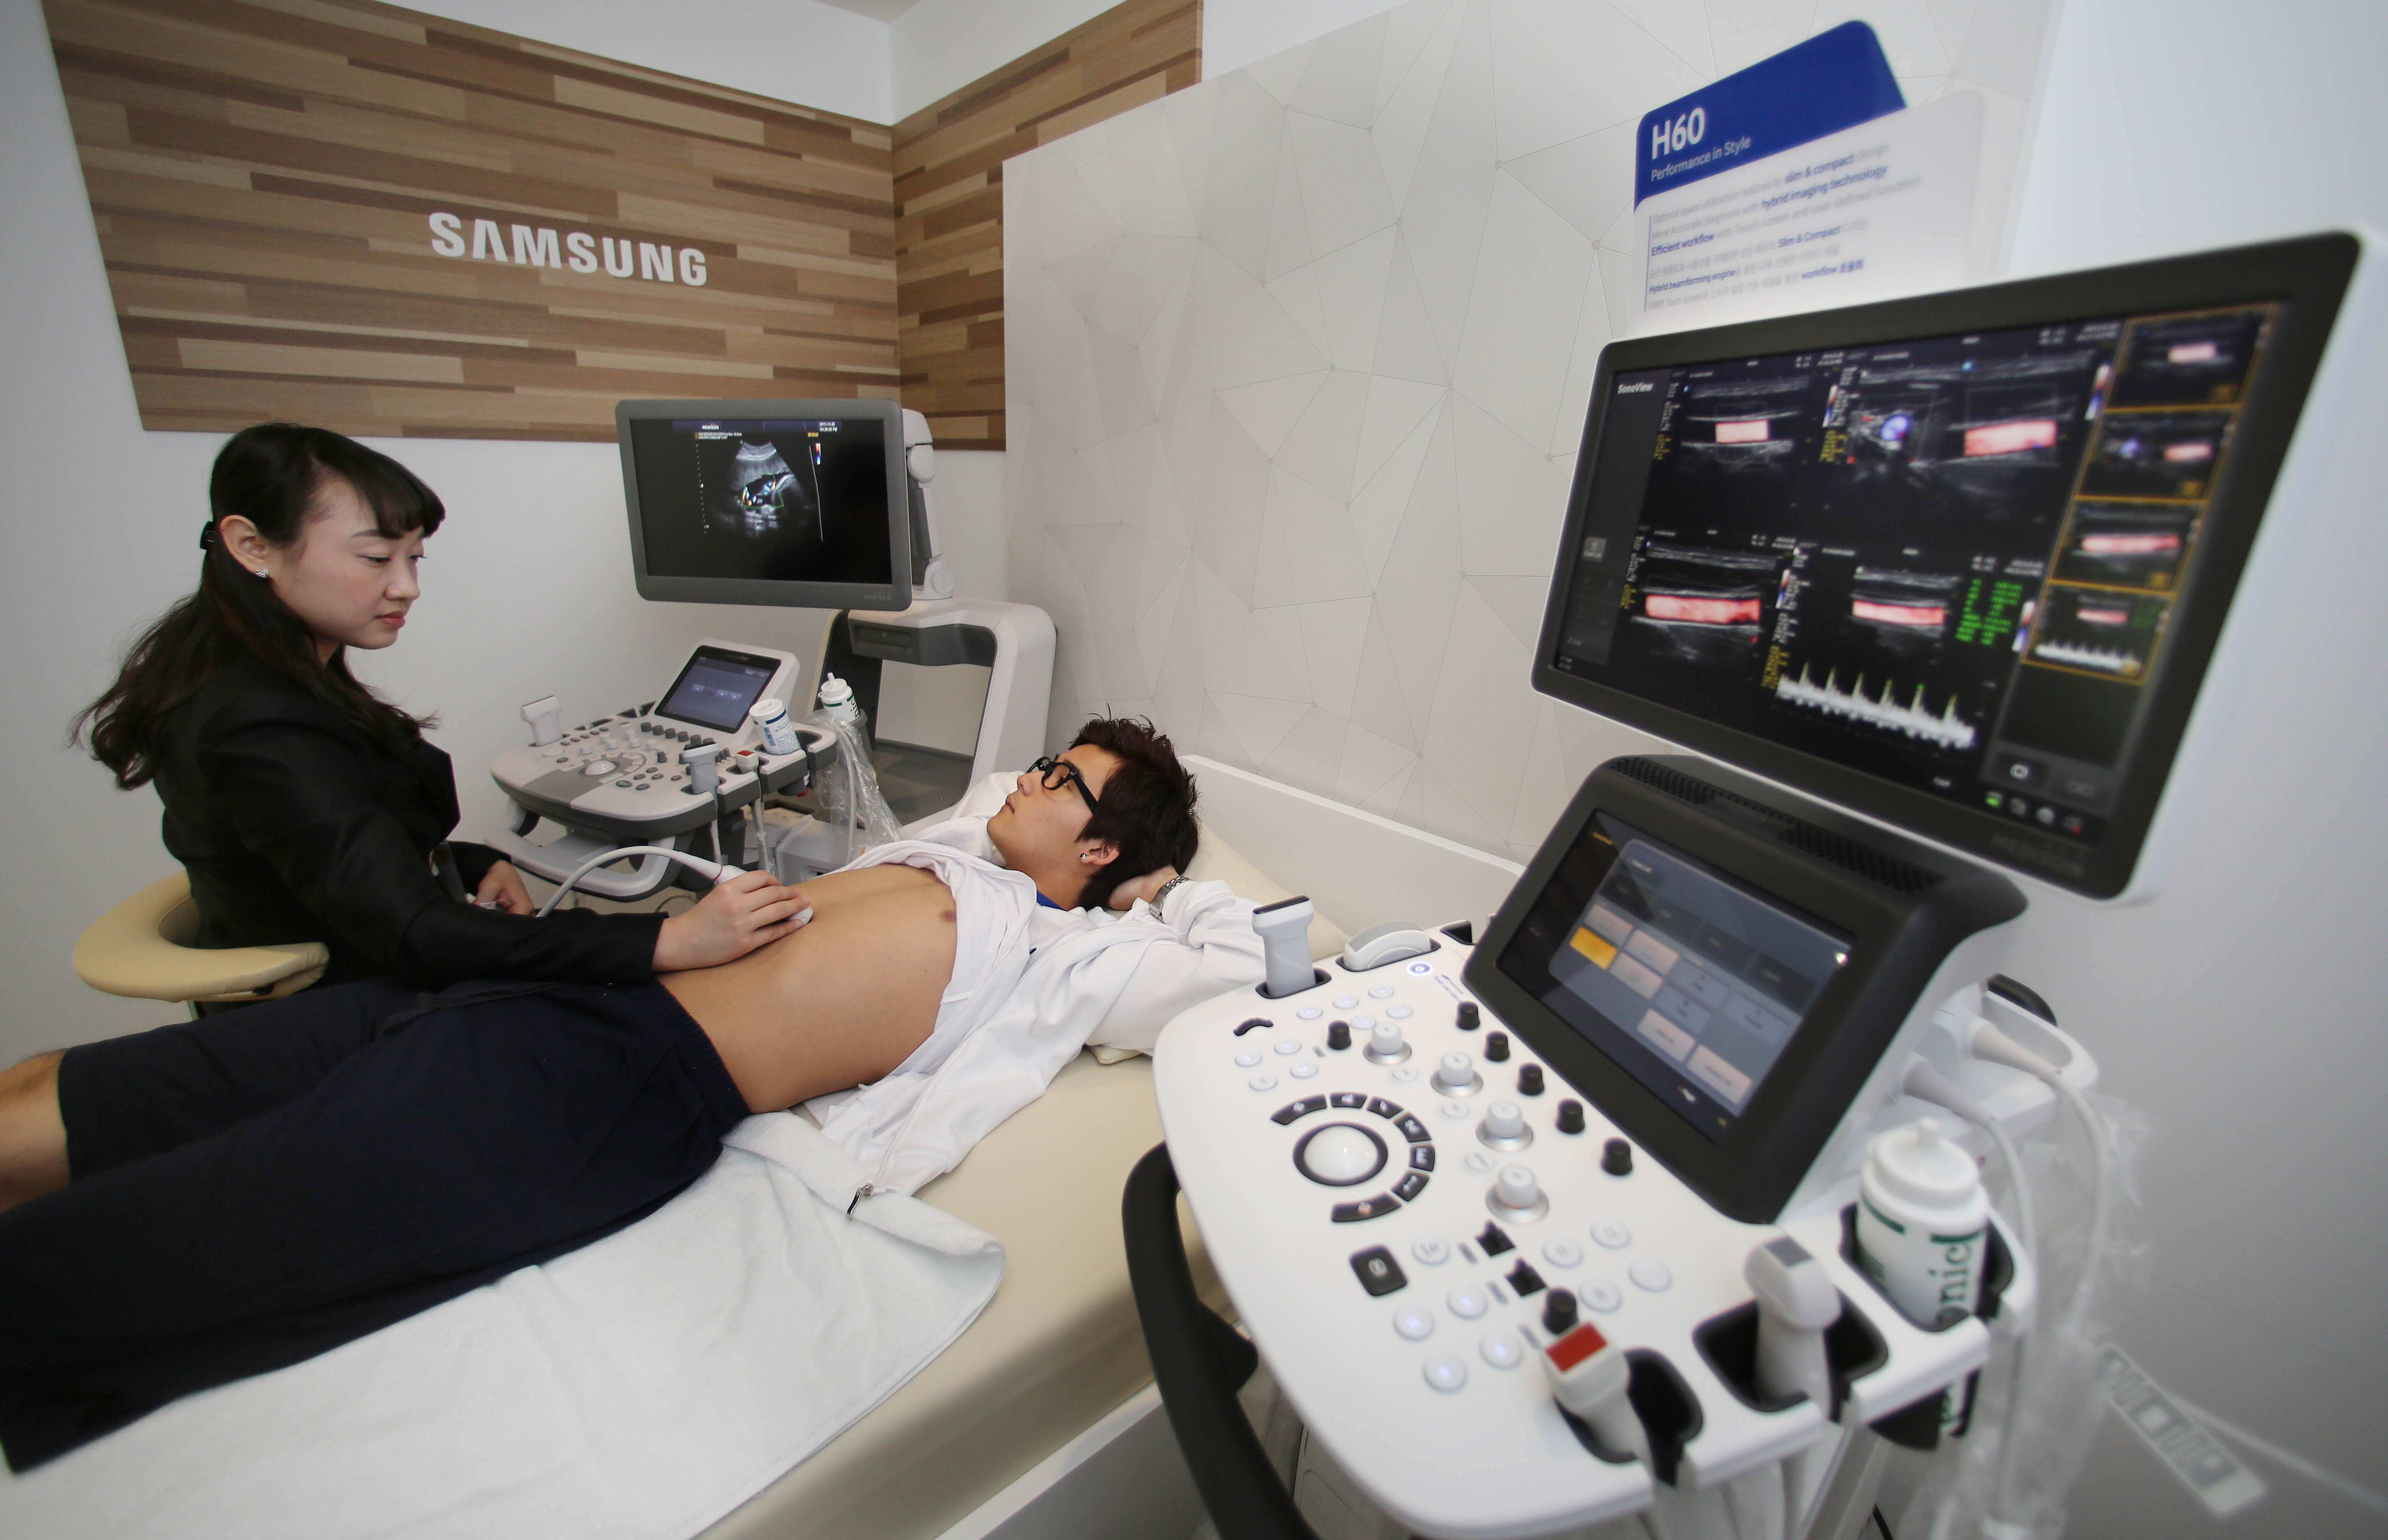 Korea Ranked 11th in Medical Equipment Production Last Year